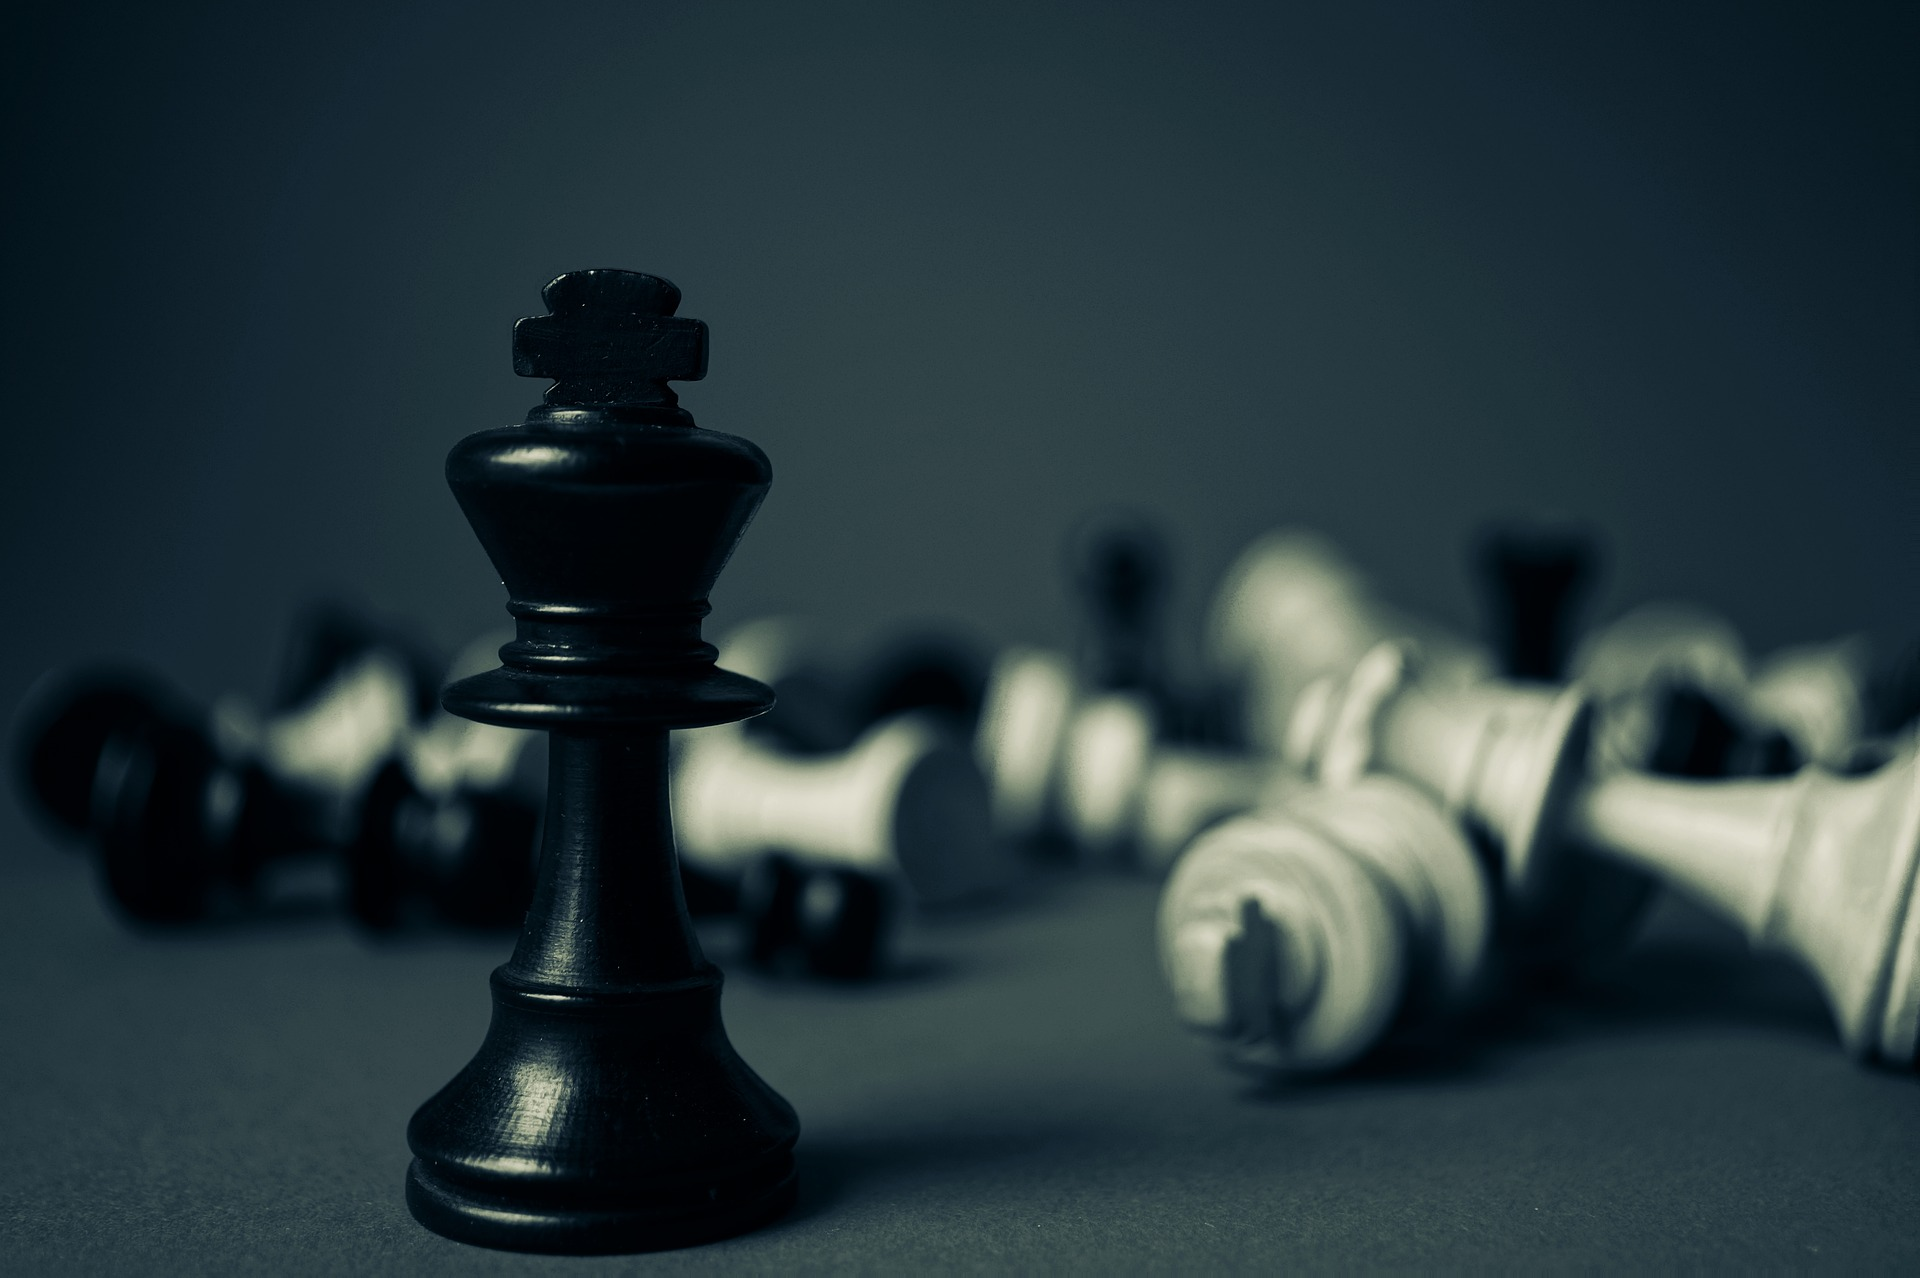 The black king in chess